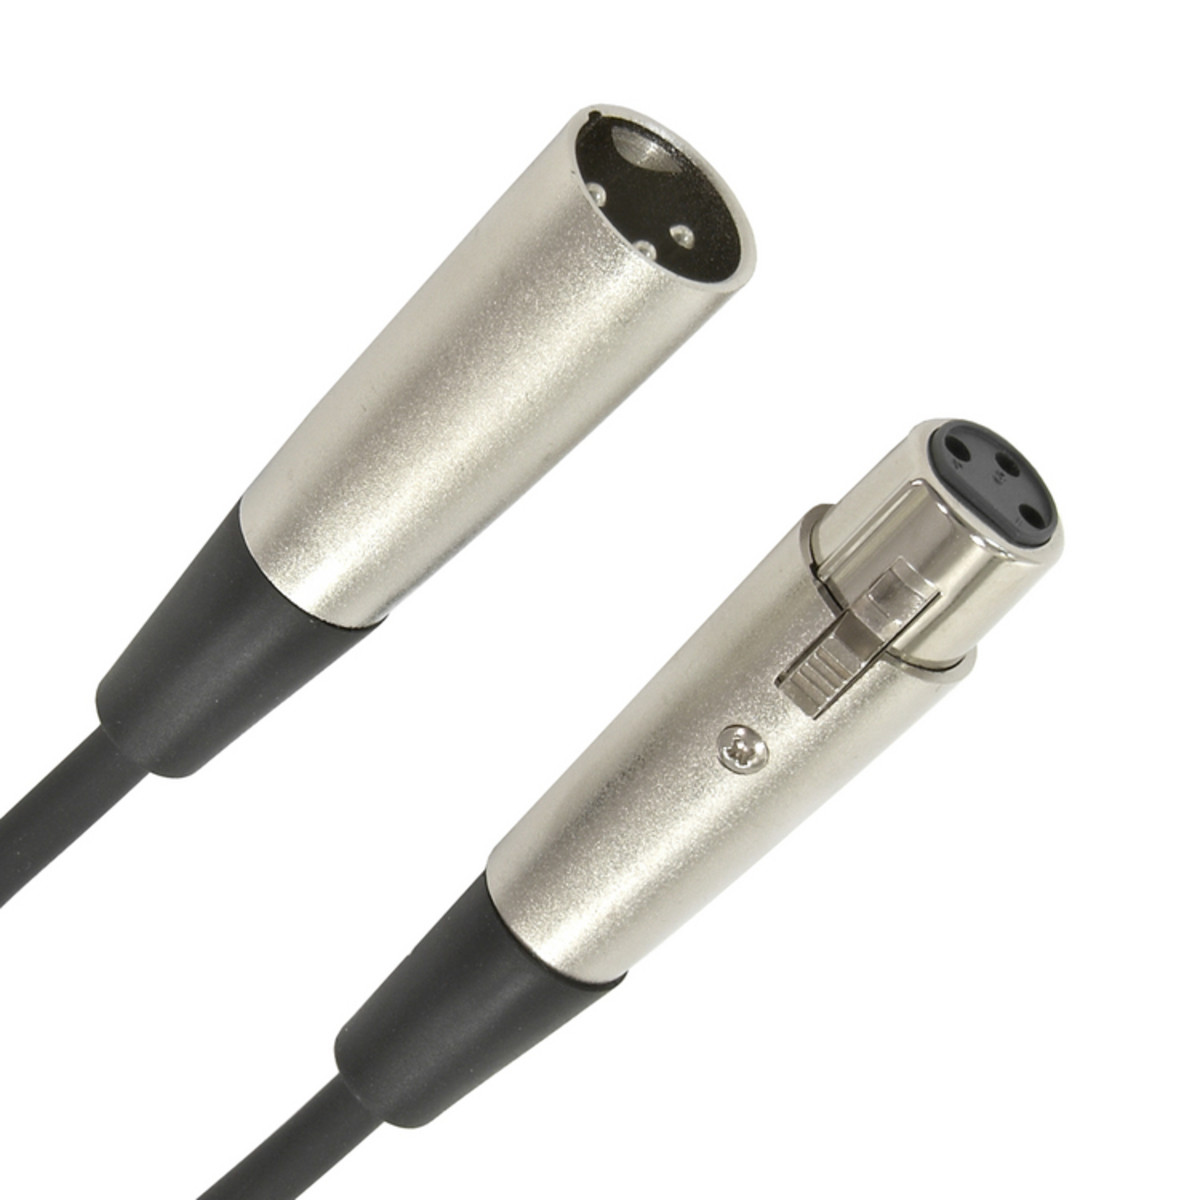 XLR (F) - XLR (M) Microphone Cable, 3m at Gear4music.com